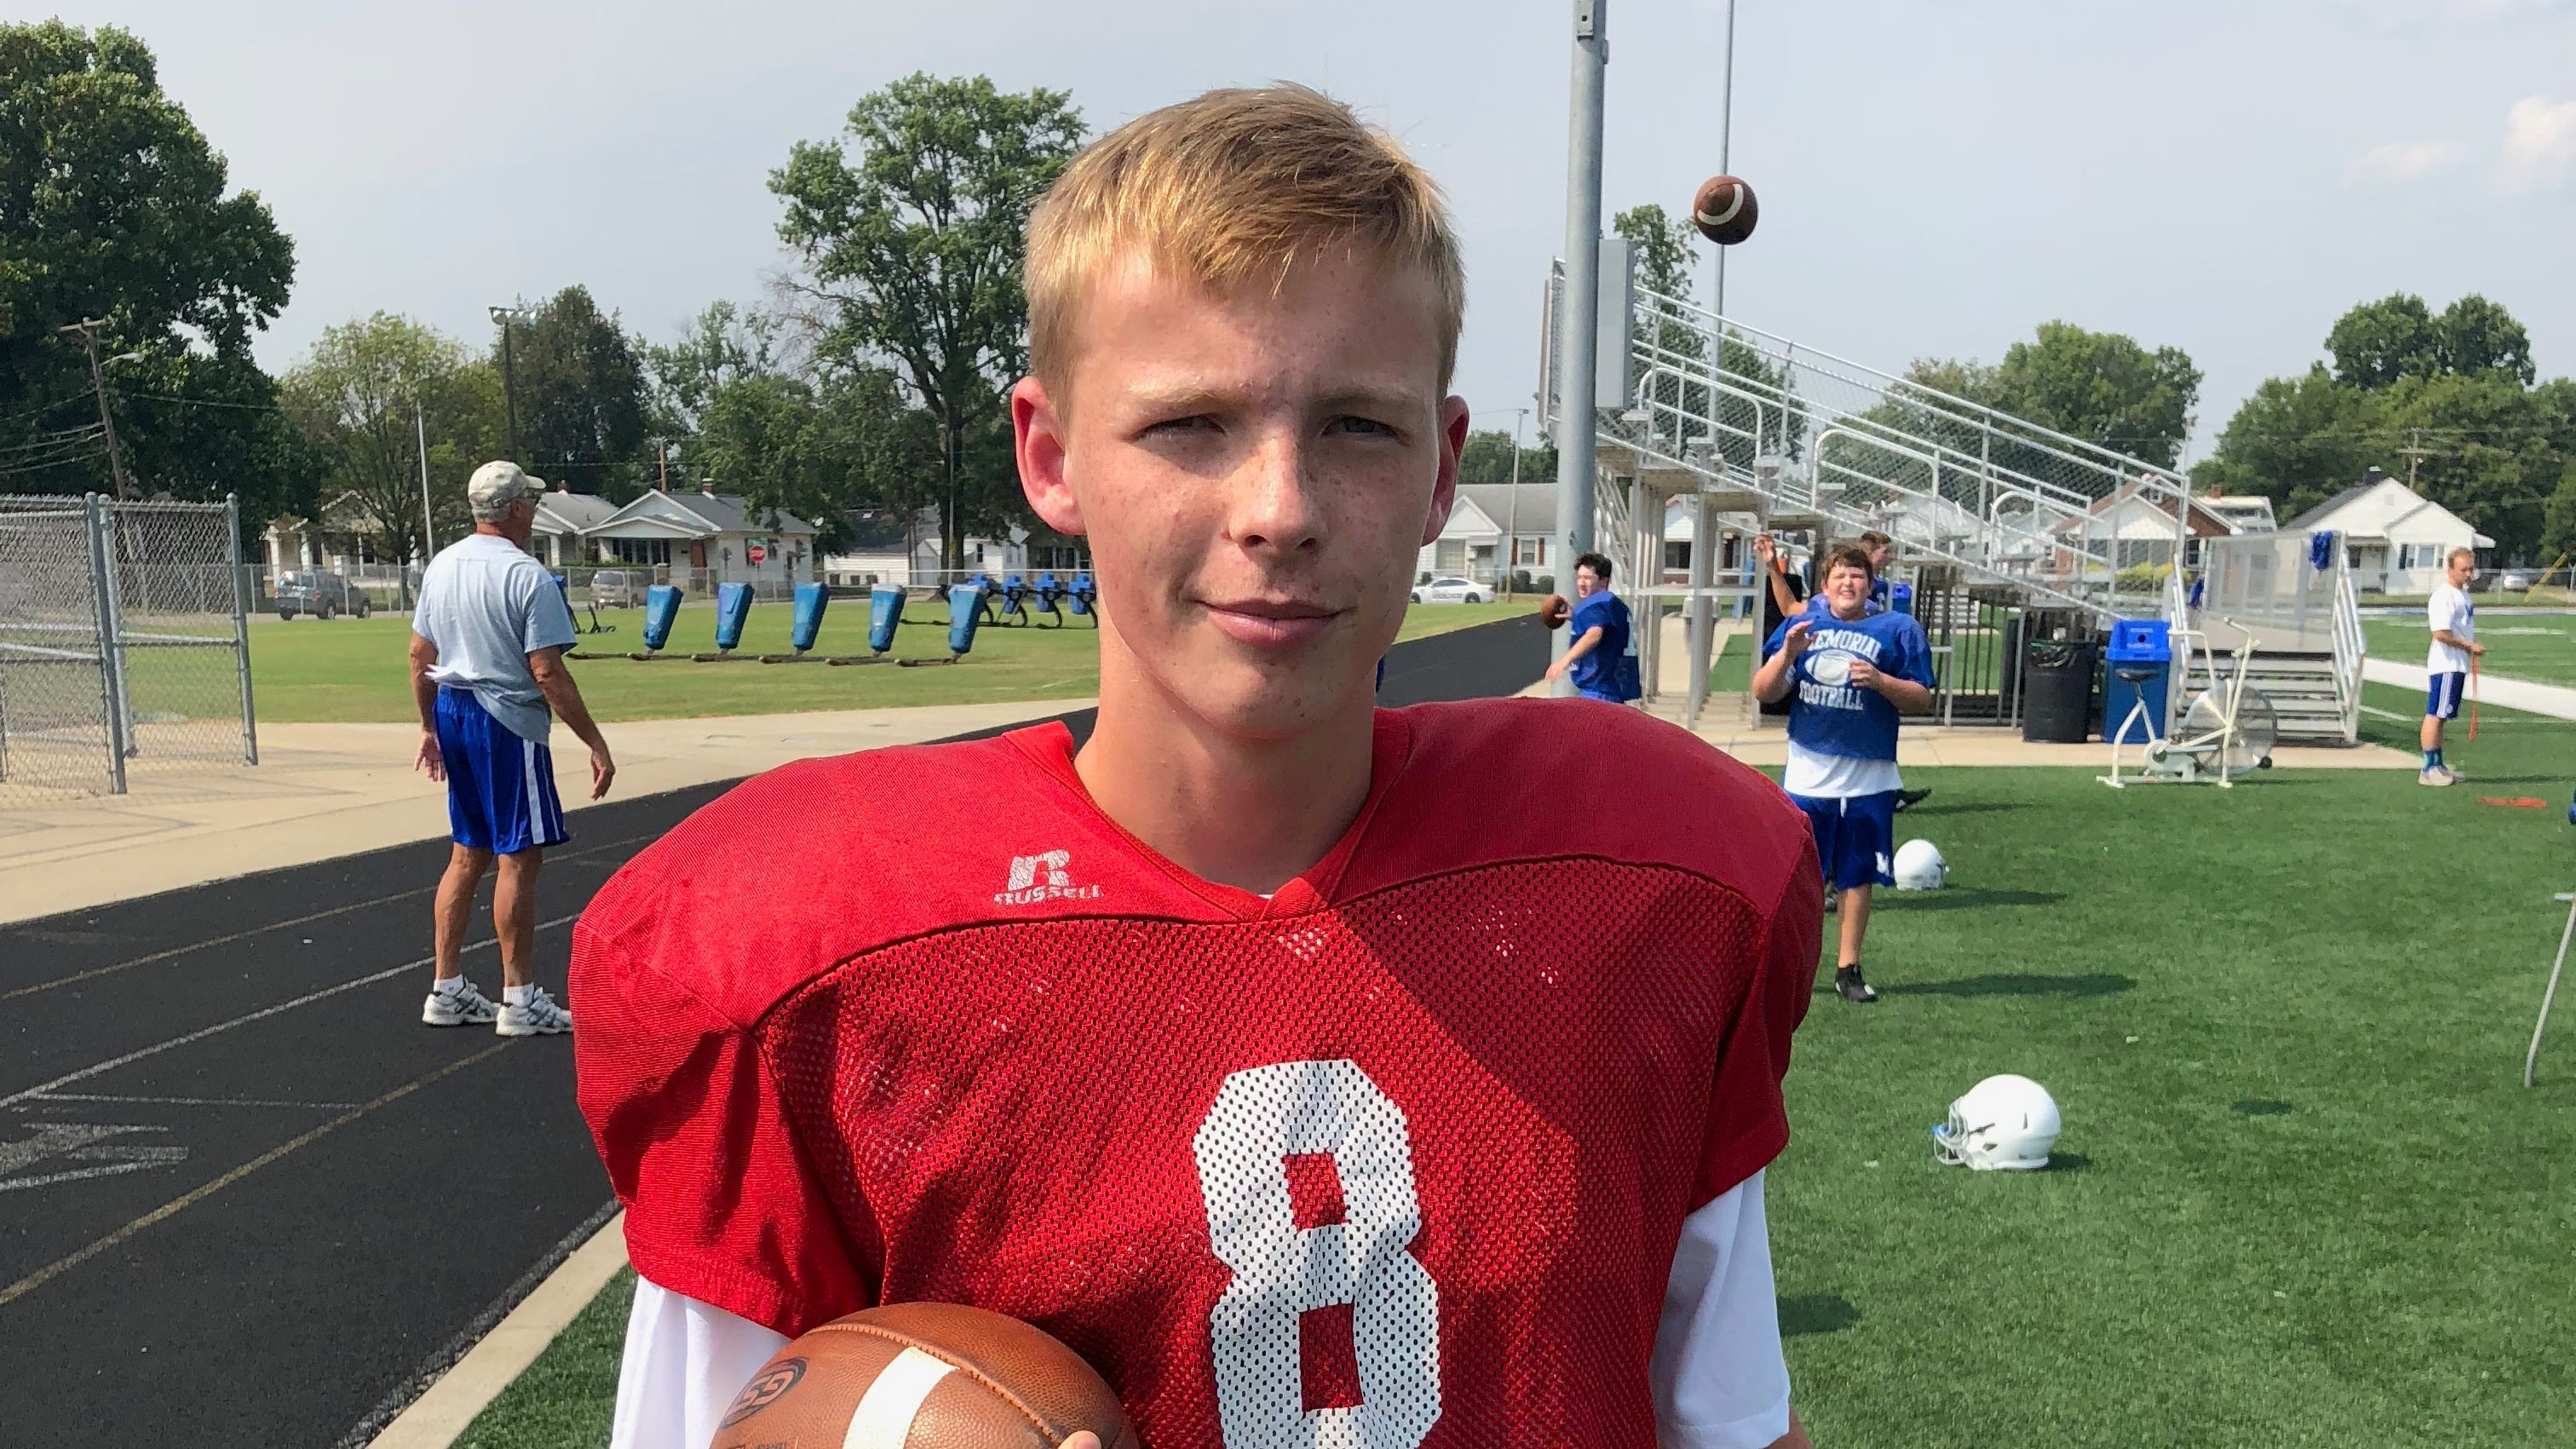 Memorial QB, an exchange student from Iceland, lives with coach's family | Lindskog